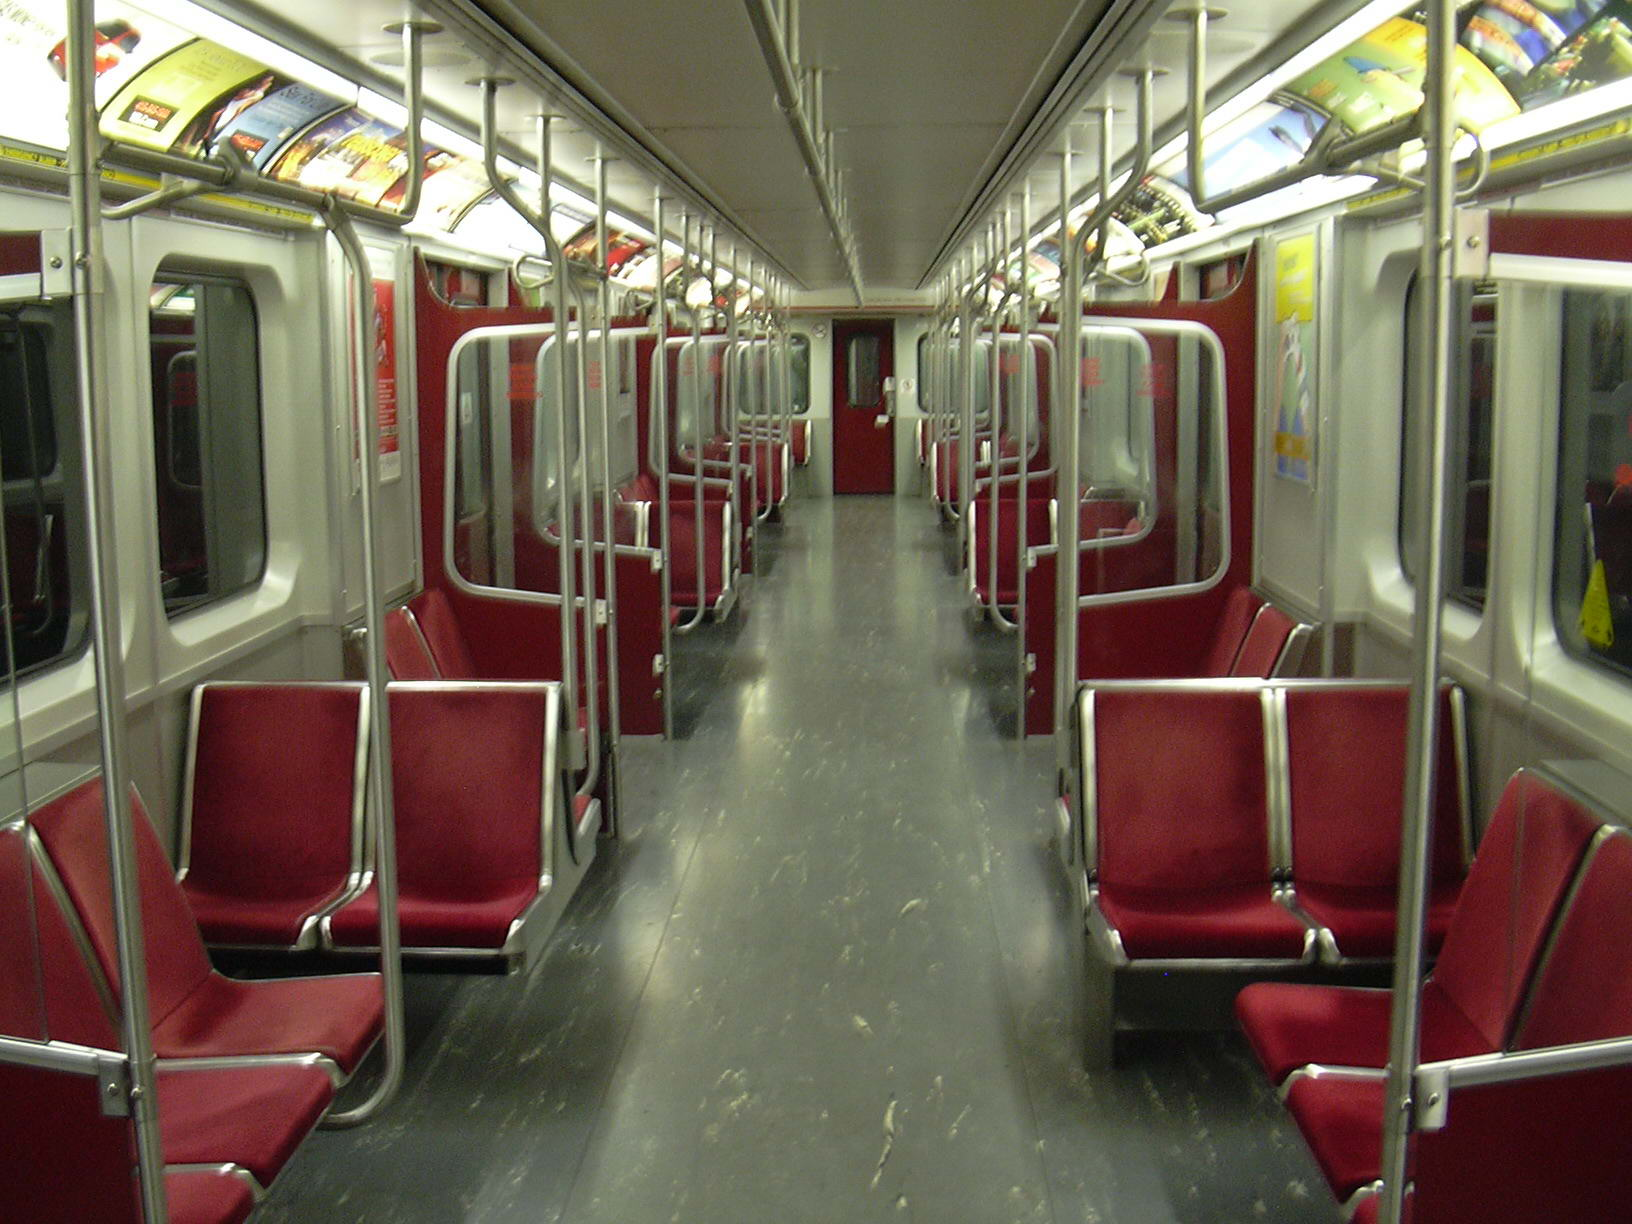 file subway car wikipedia. Black Bedroom Furniture Sets. Home Design Ideas